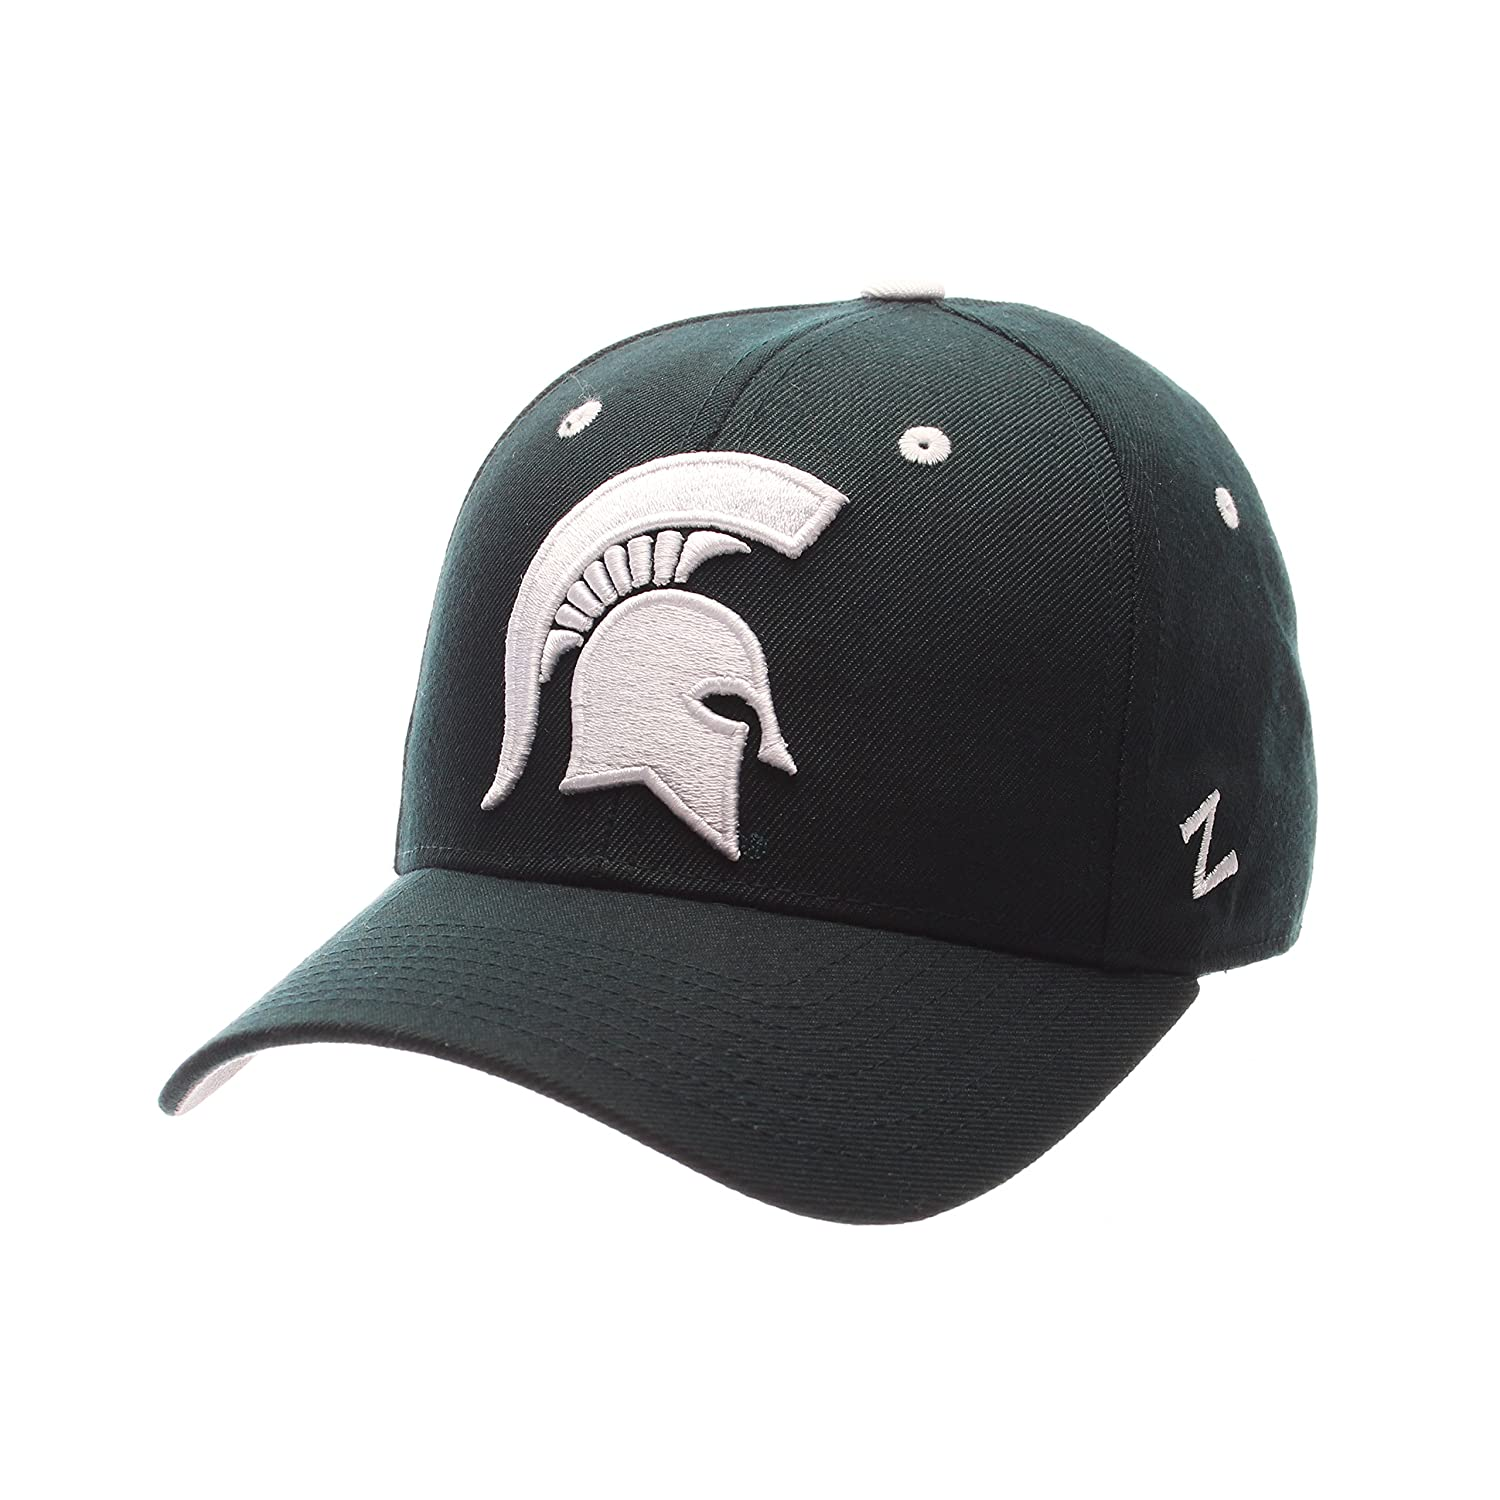 ZHATS NCAA Mens DH Fitted Cap